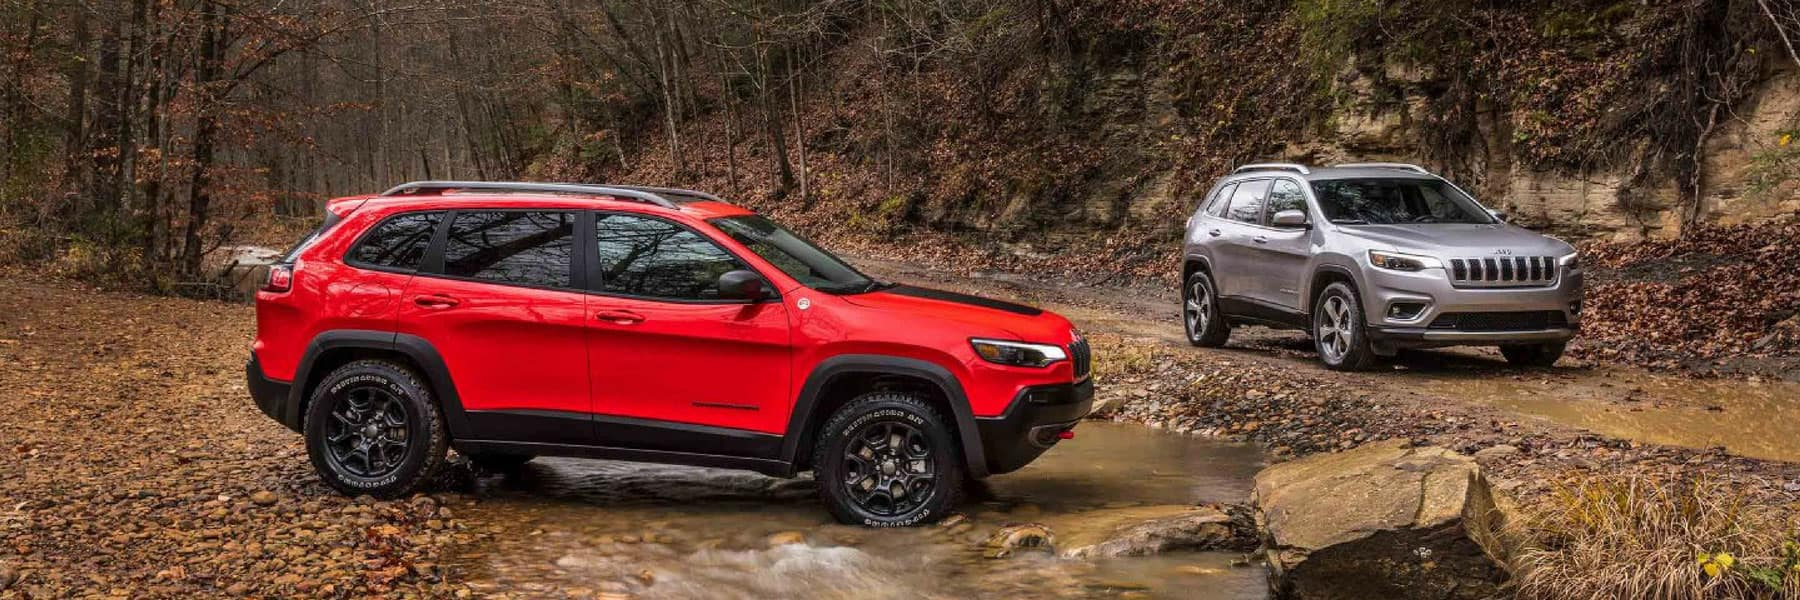 New 2019 Jeep Cherokee near me